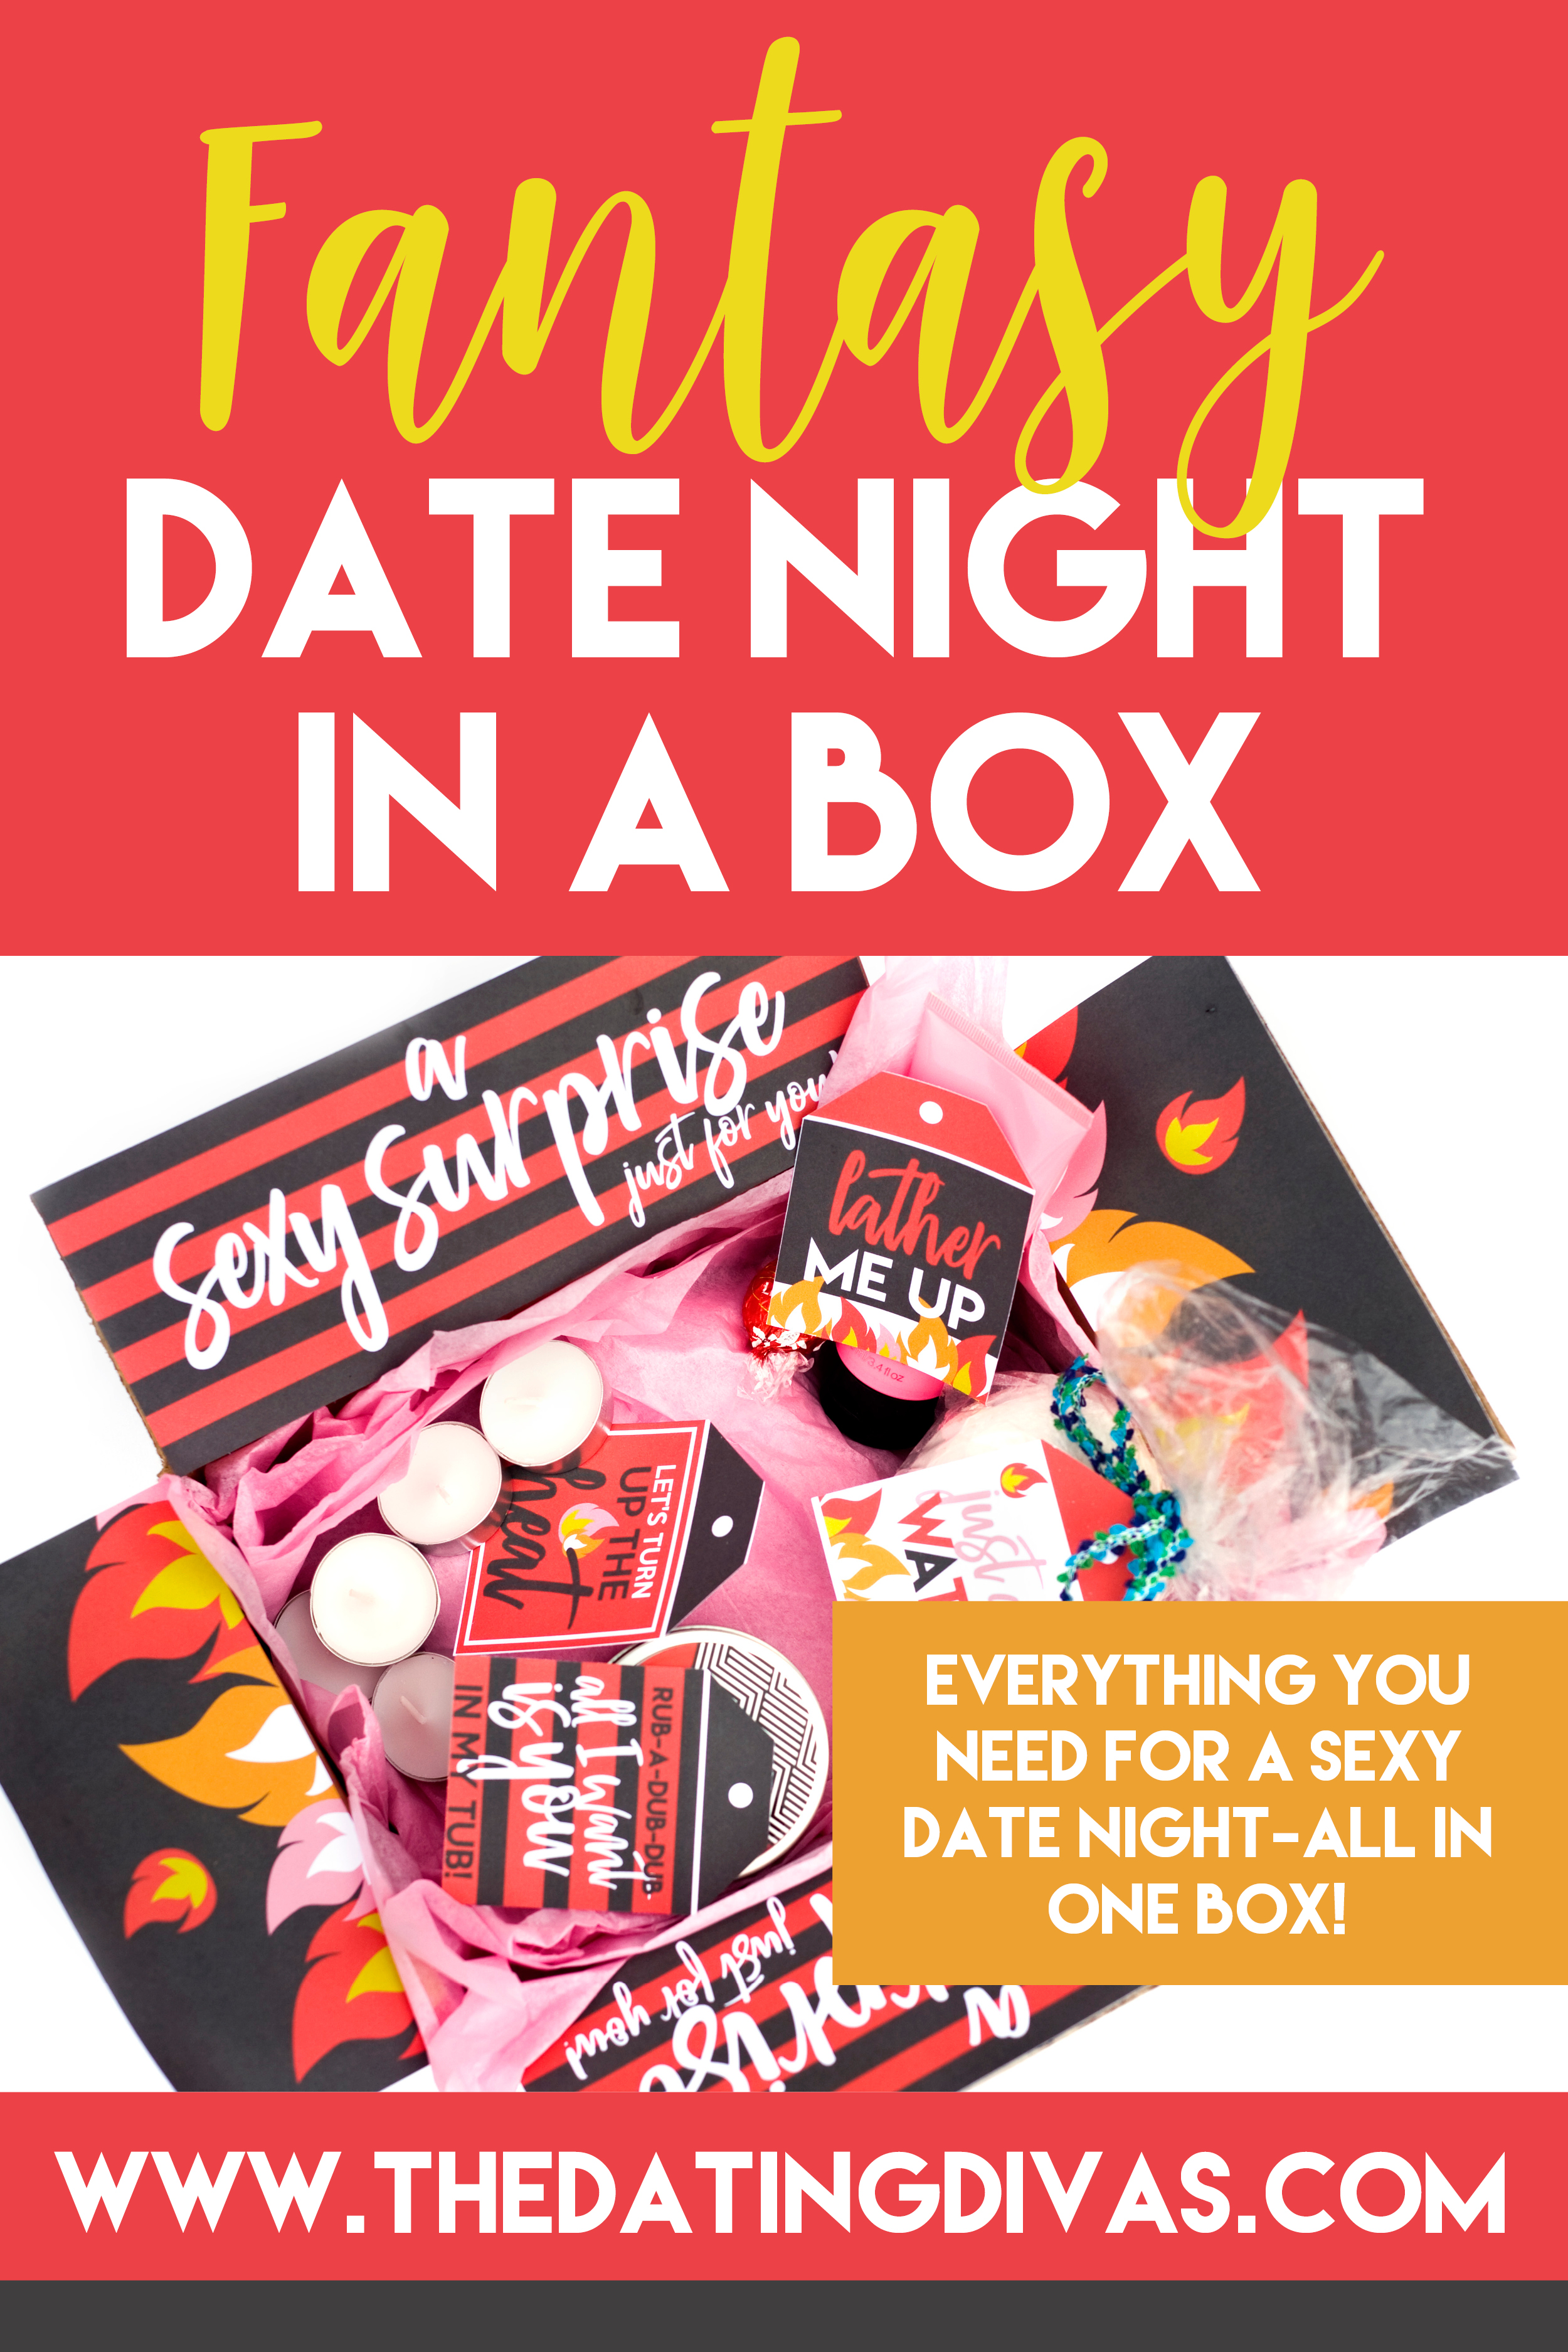 I'd love to make a sexy date night in a box a monthly tradition! Kind of like a DIY adult subscription box. #datenightin #datenightinabox #sexydatenightideas